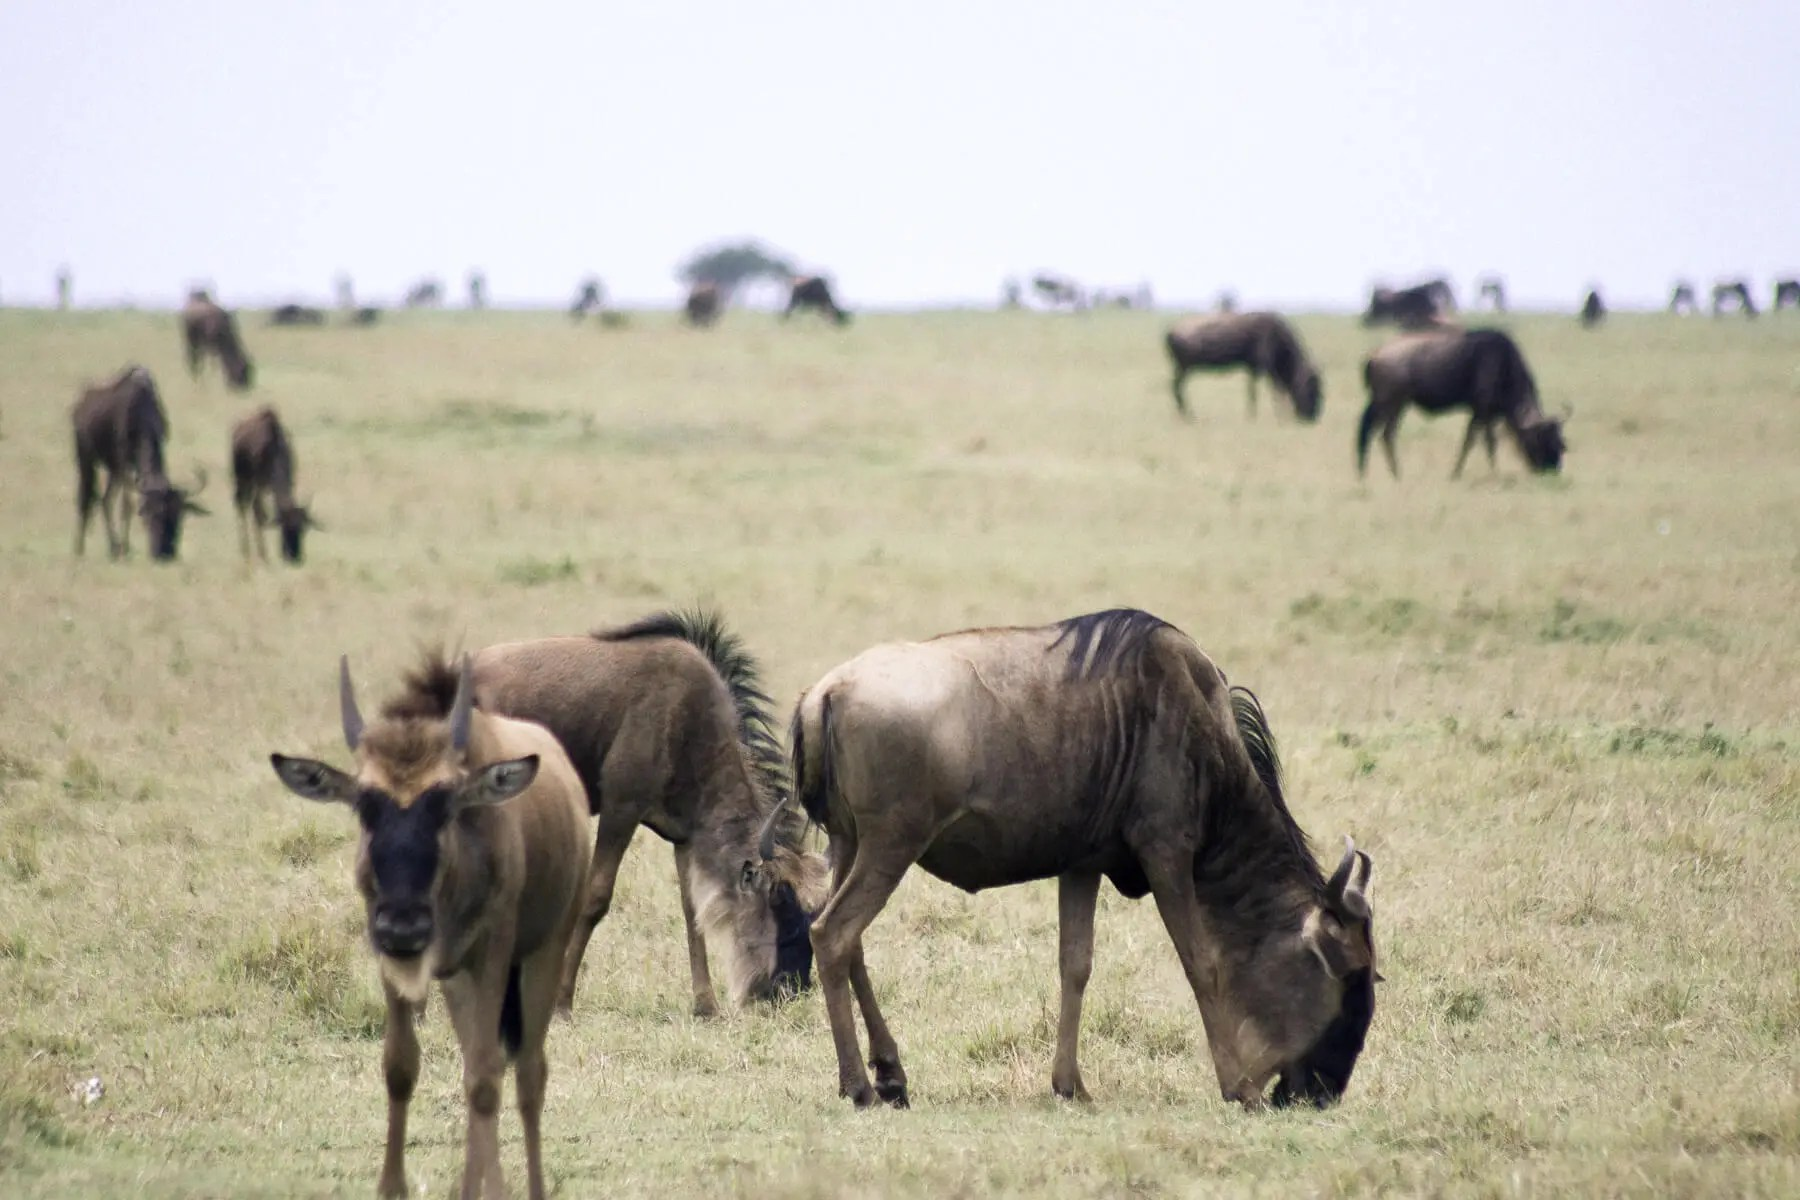 A group of wildebeest grazing in the Maasai Mara